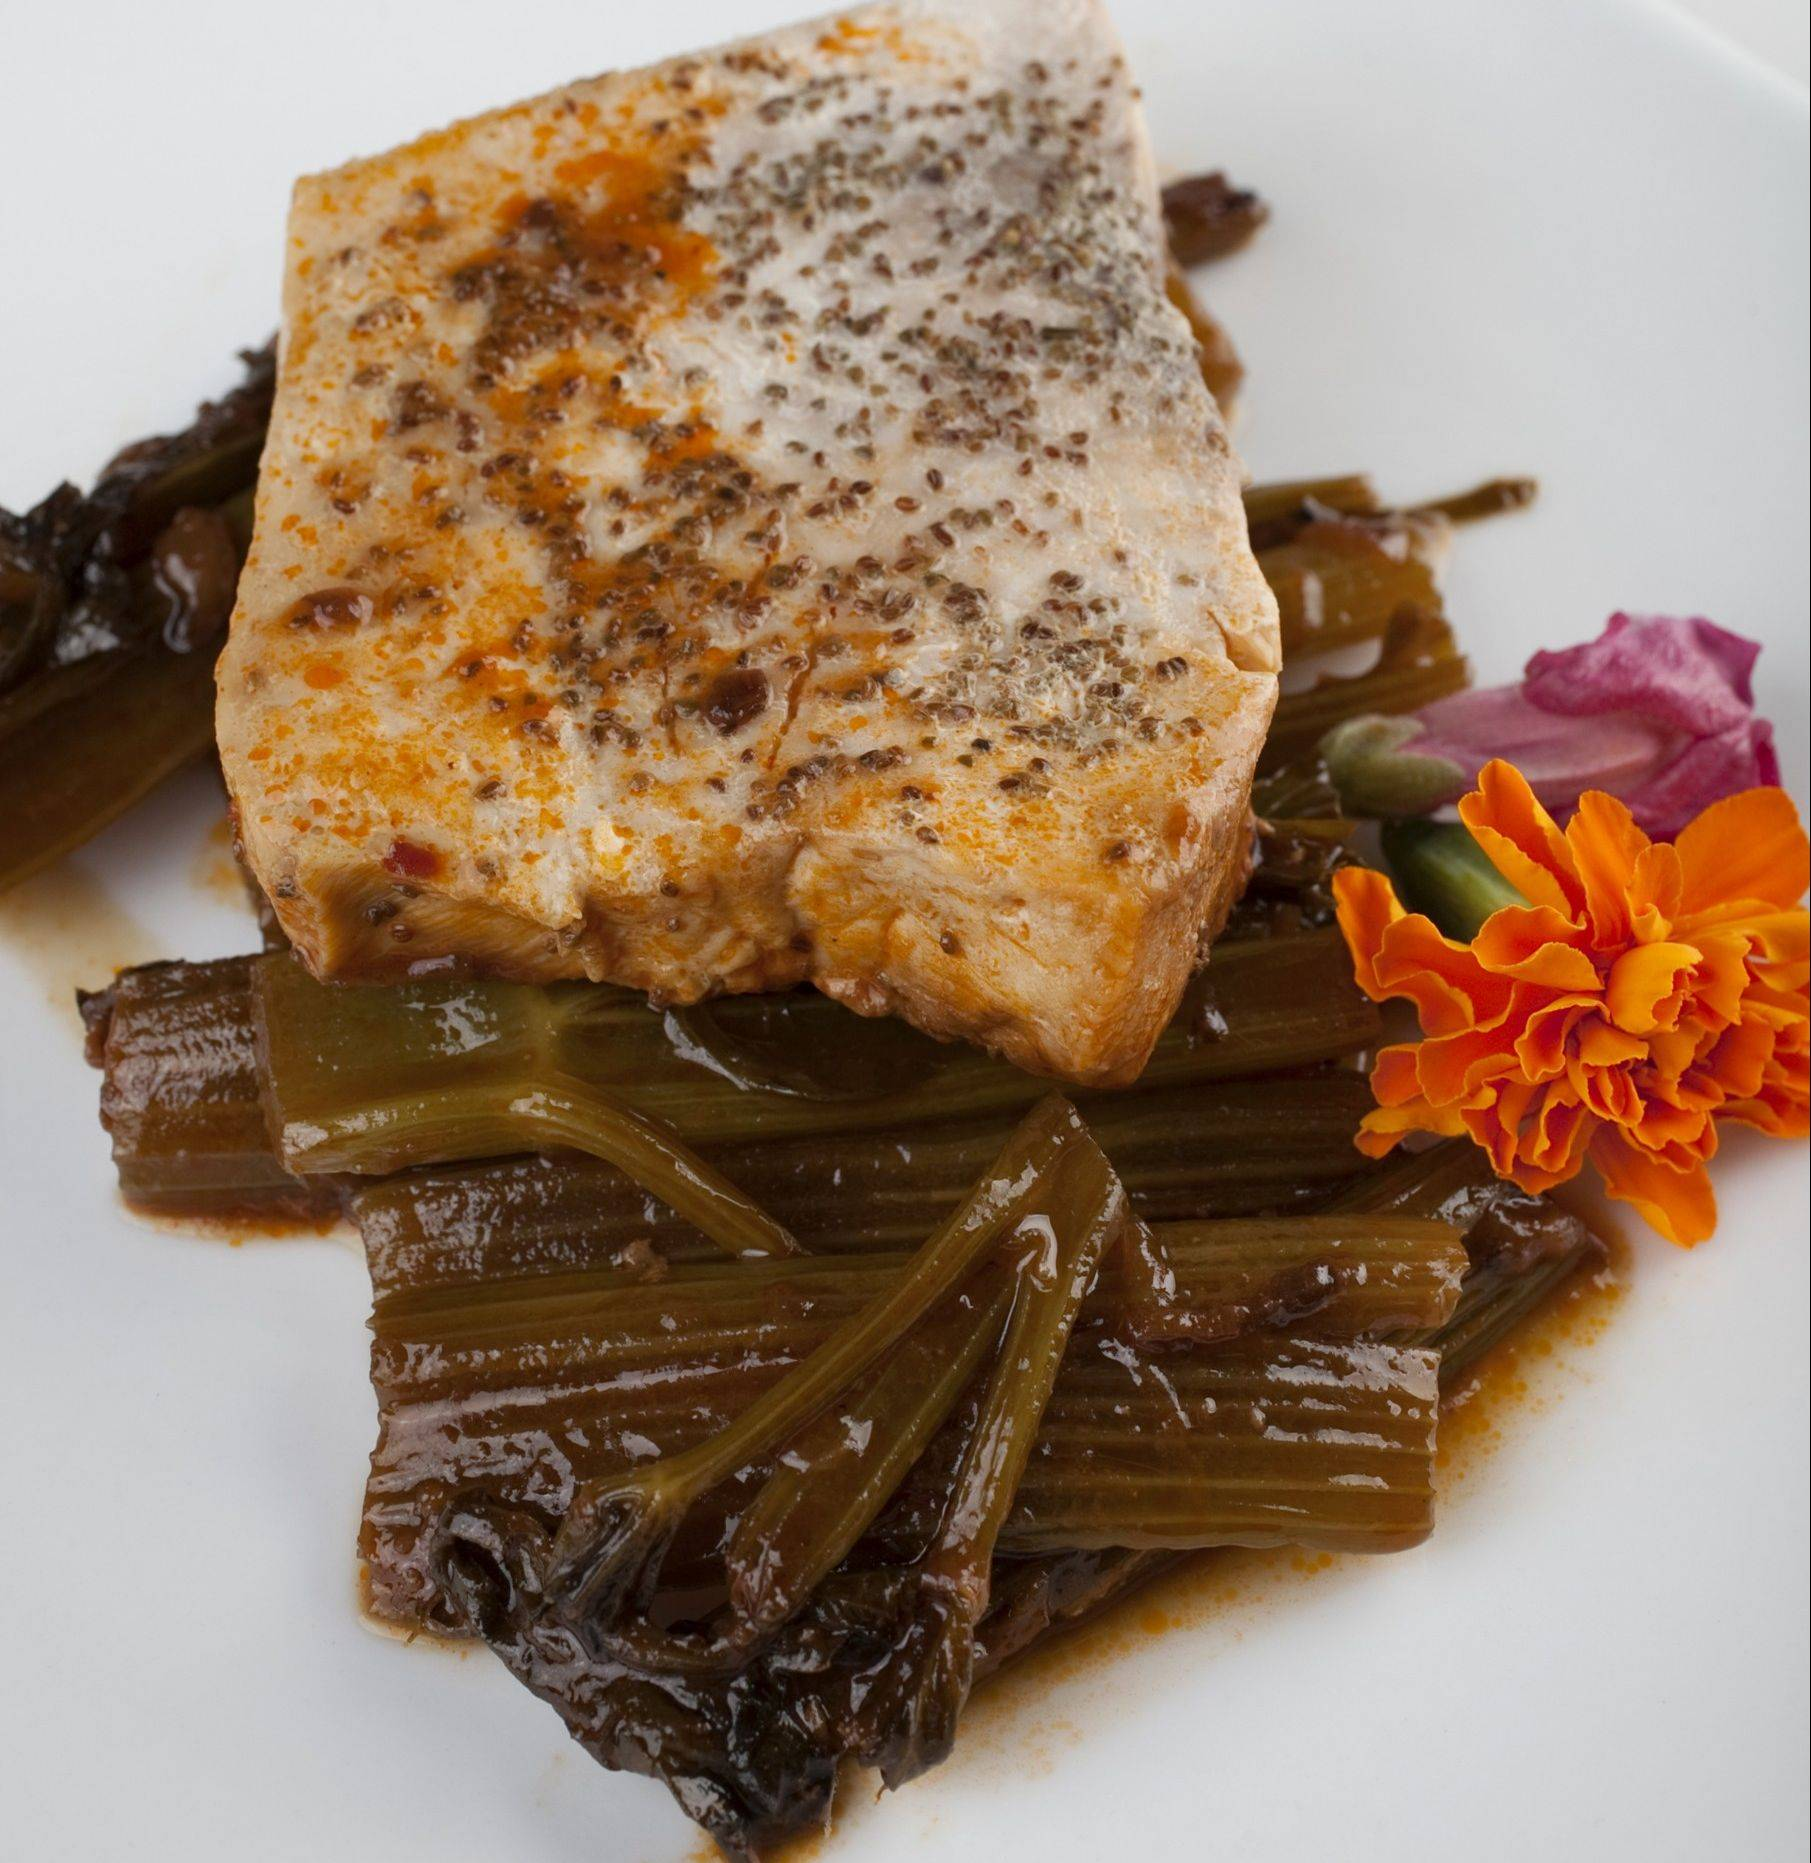 Mahi-mahi with Baised Celery